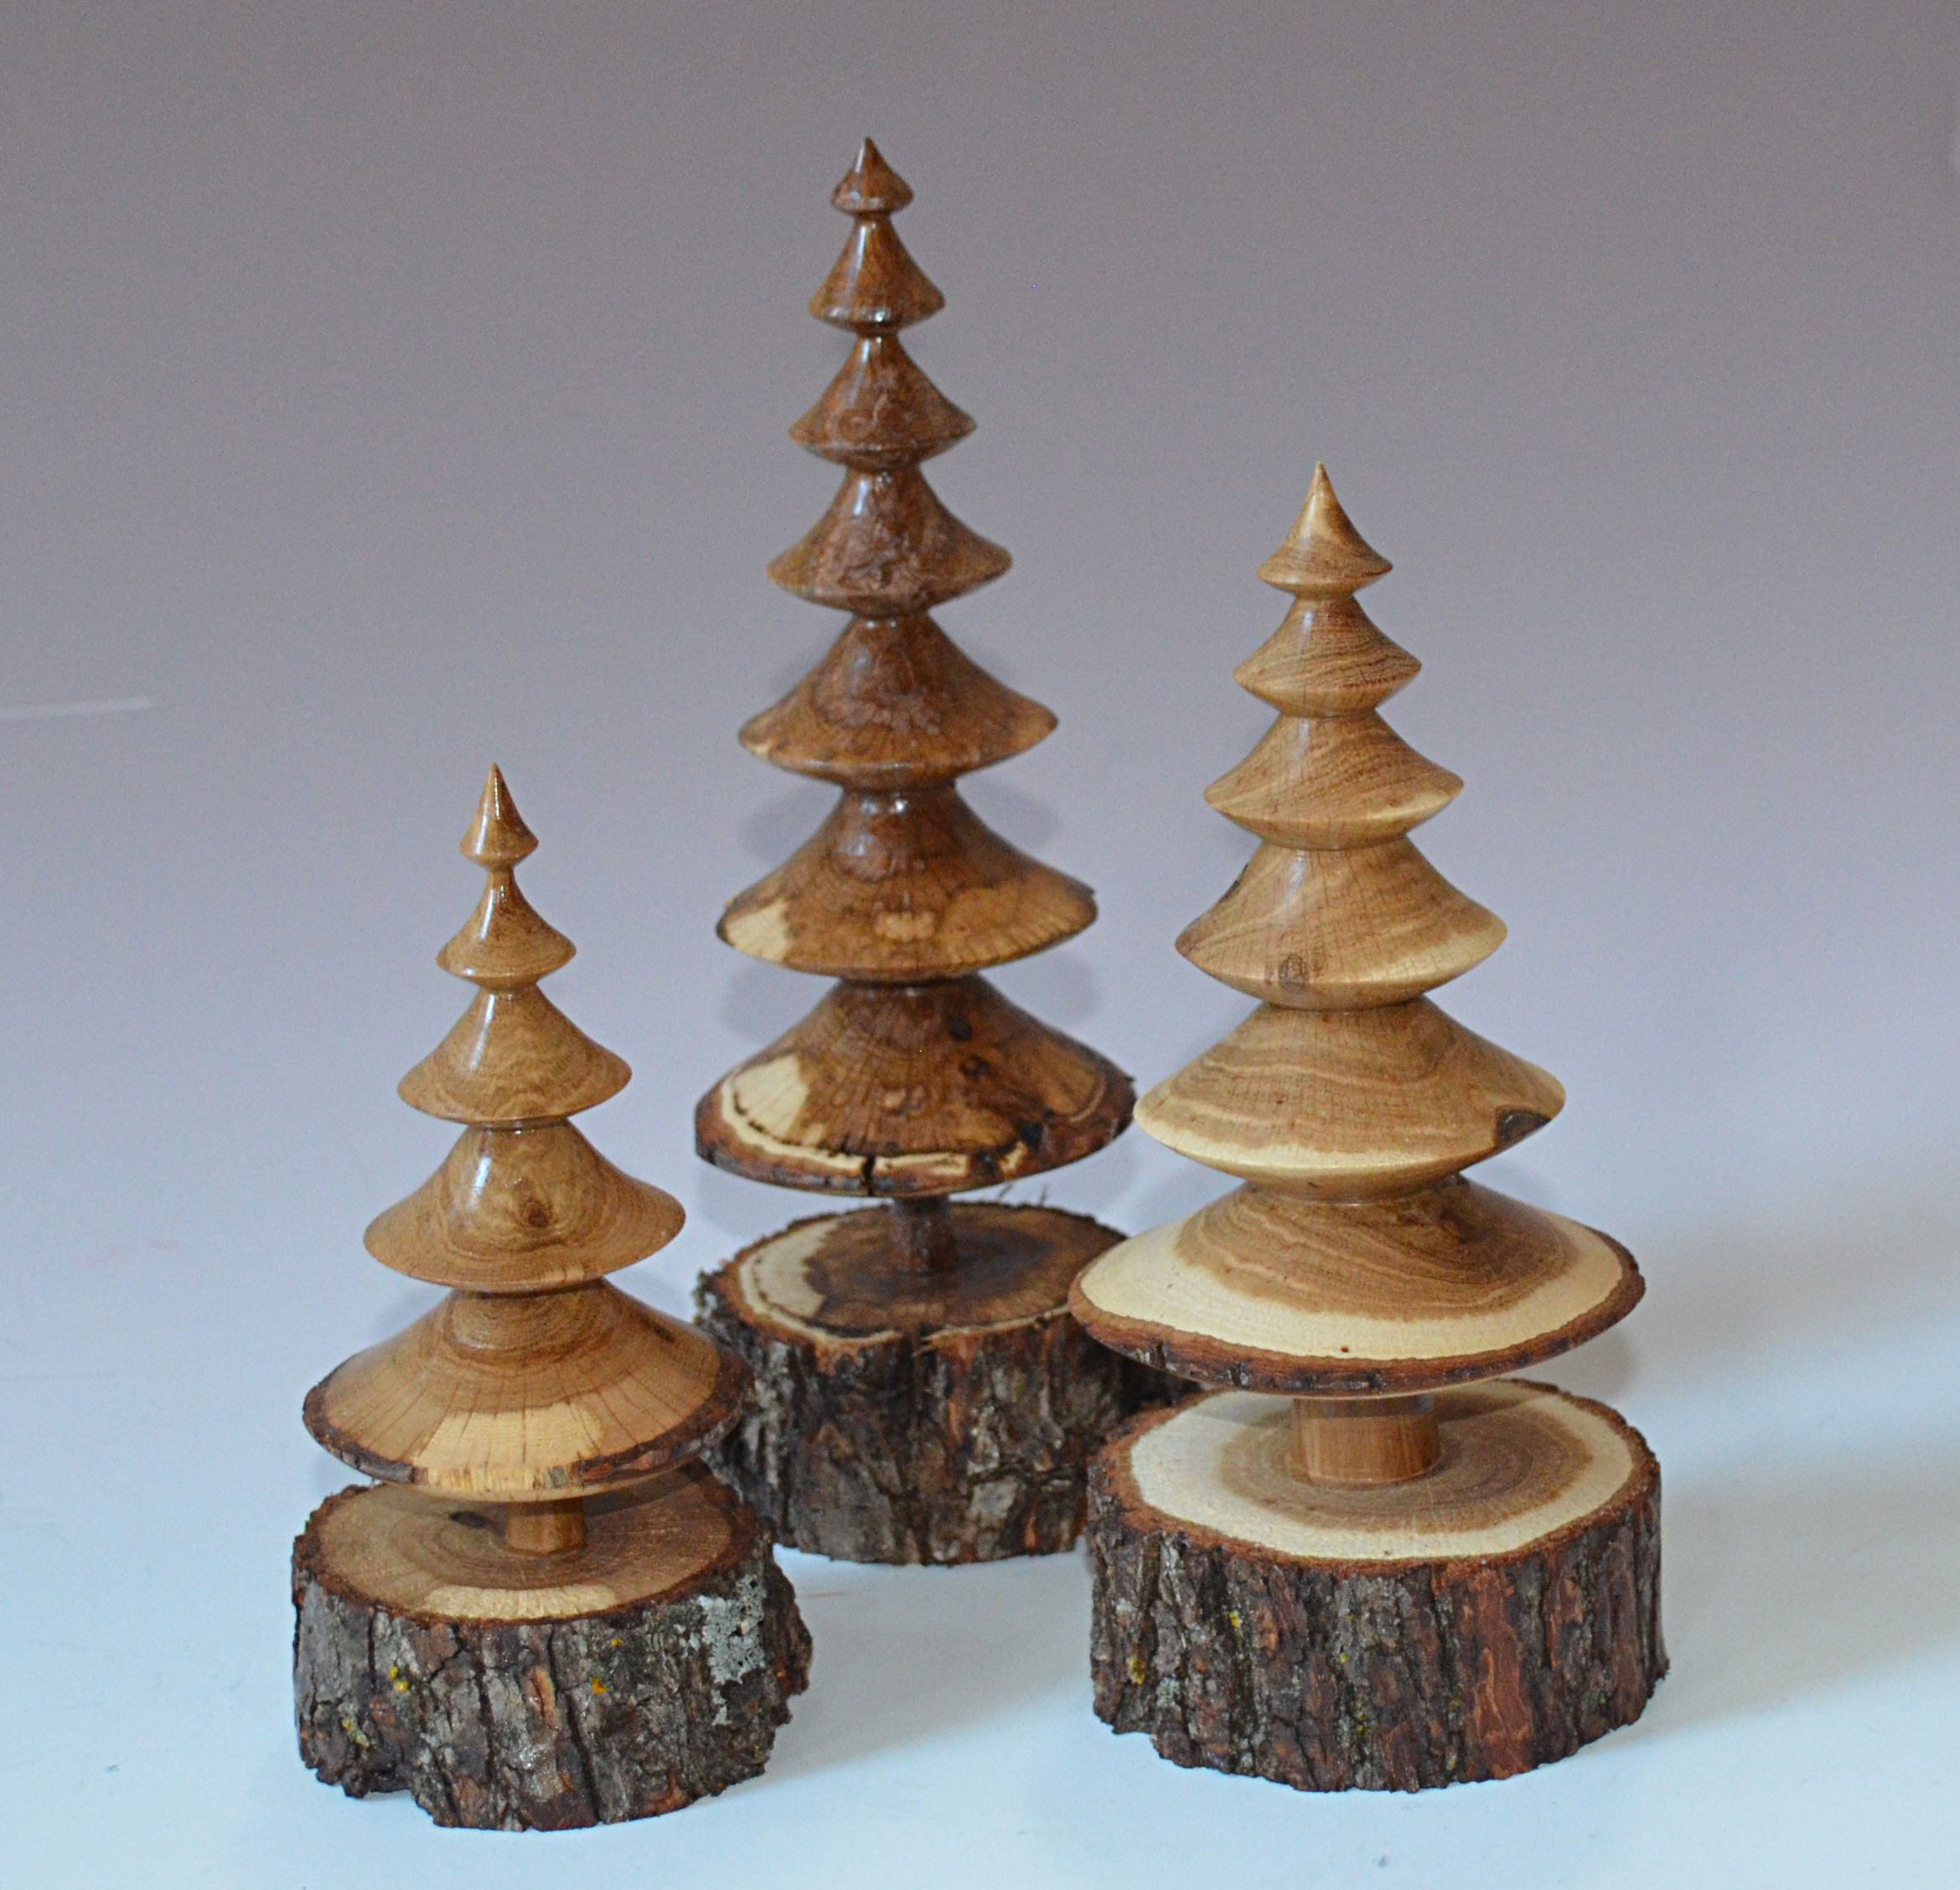 Trees From Scrub Oak Branches By Dennis Liggett Wood Turning Projects Wood Turning Wood Lathe